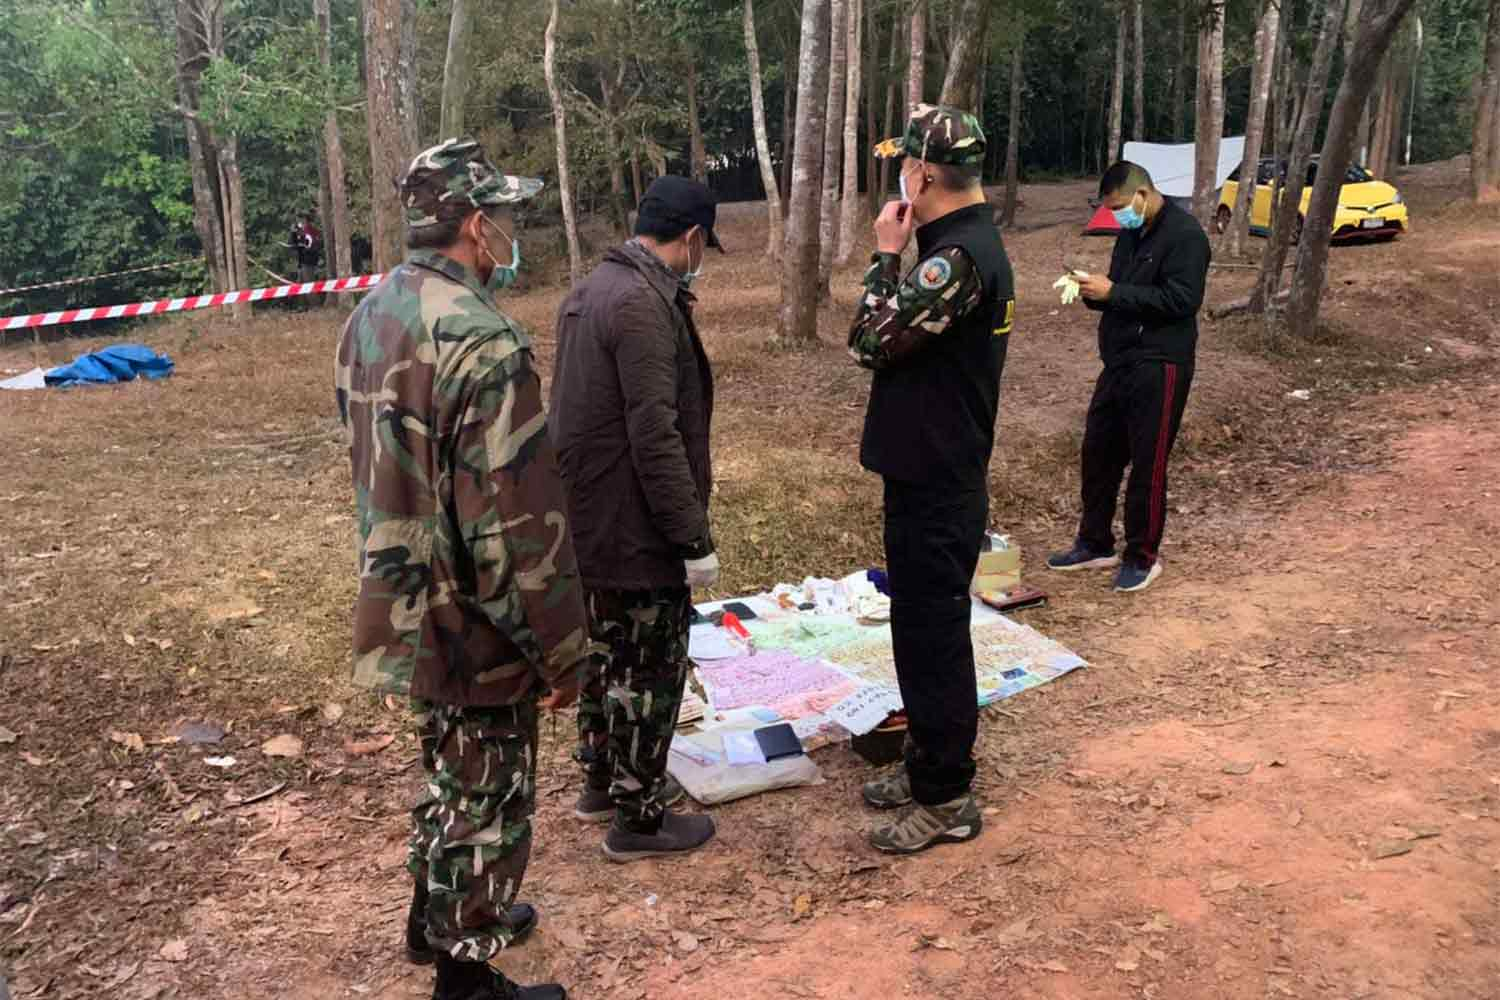 Park officials and police at the scene where a wild elephant killed an elderly man sleeping in a tent, at Pha Kluai Mai camping area in Khao Yai National Park, Pak Chong district, Nakhon Ratchasima, on Jan 15. (Photo: Supplied/Apinya Wipatayothin)